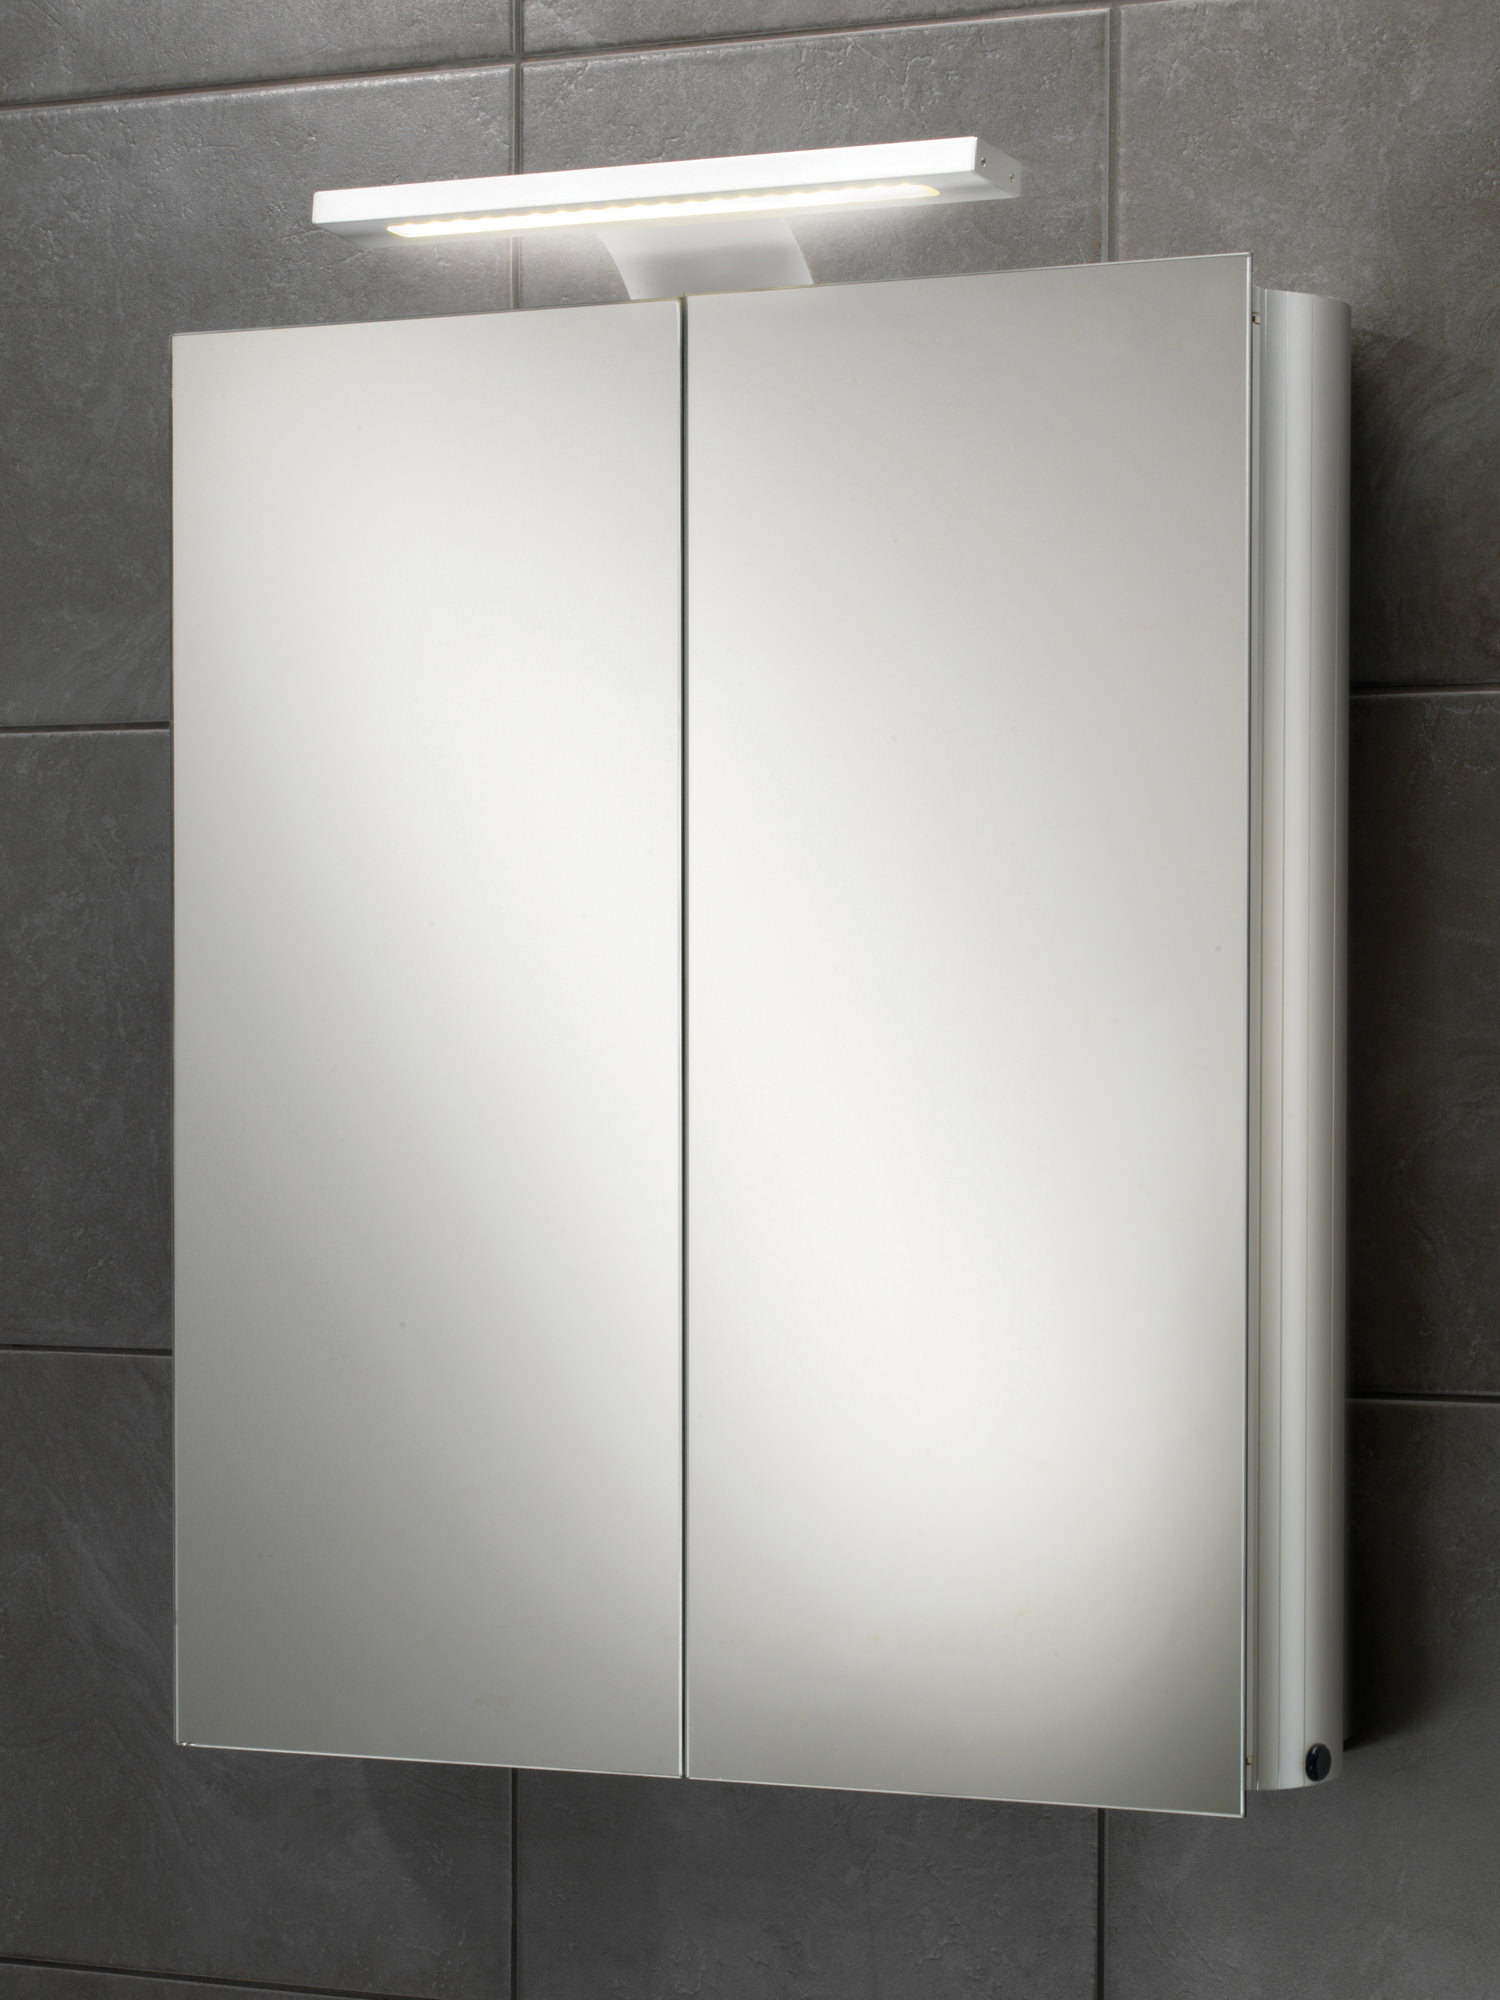 HIB Atomic Double Door Aluminium Mirrored Cabinet With LED Over Light